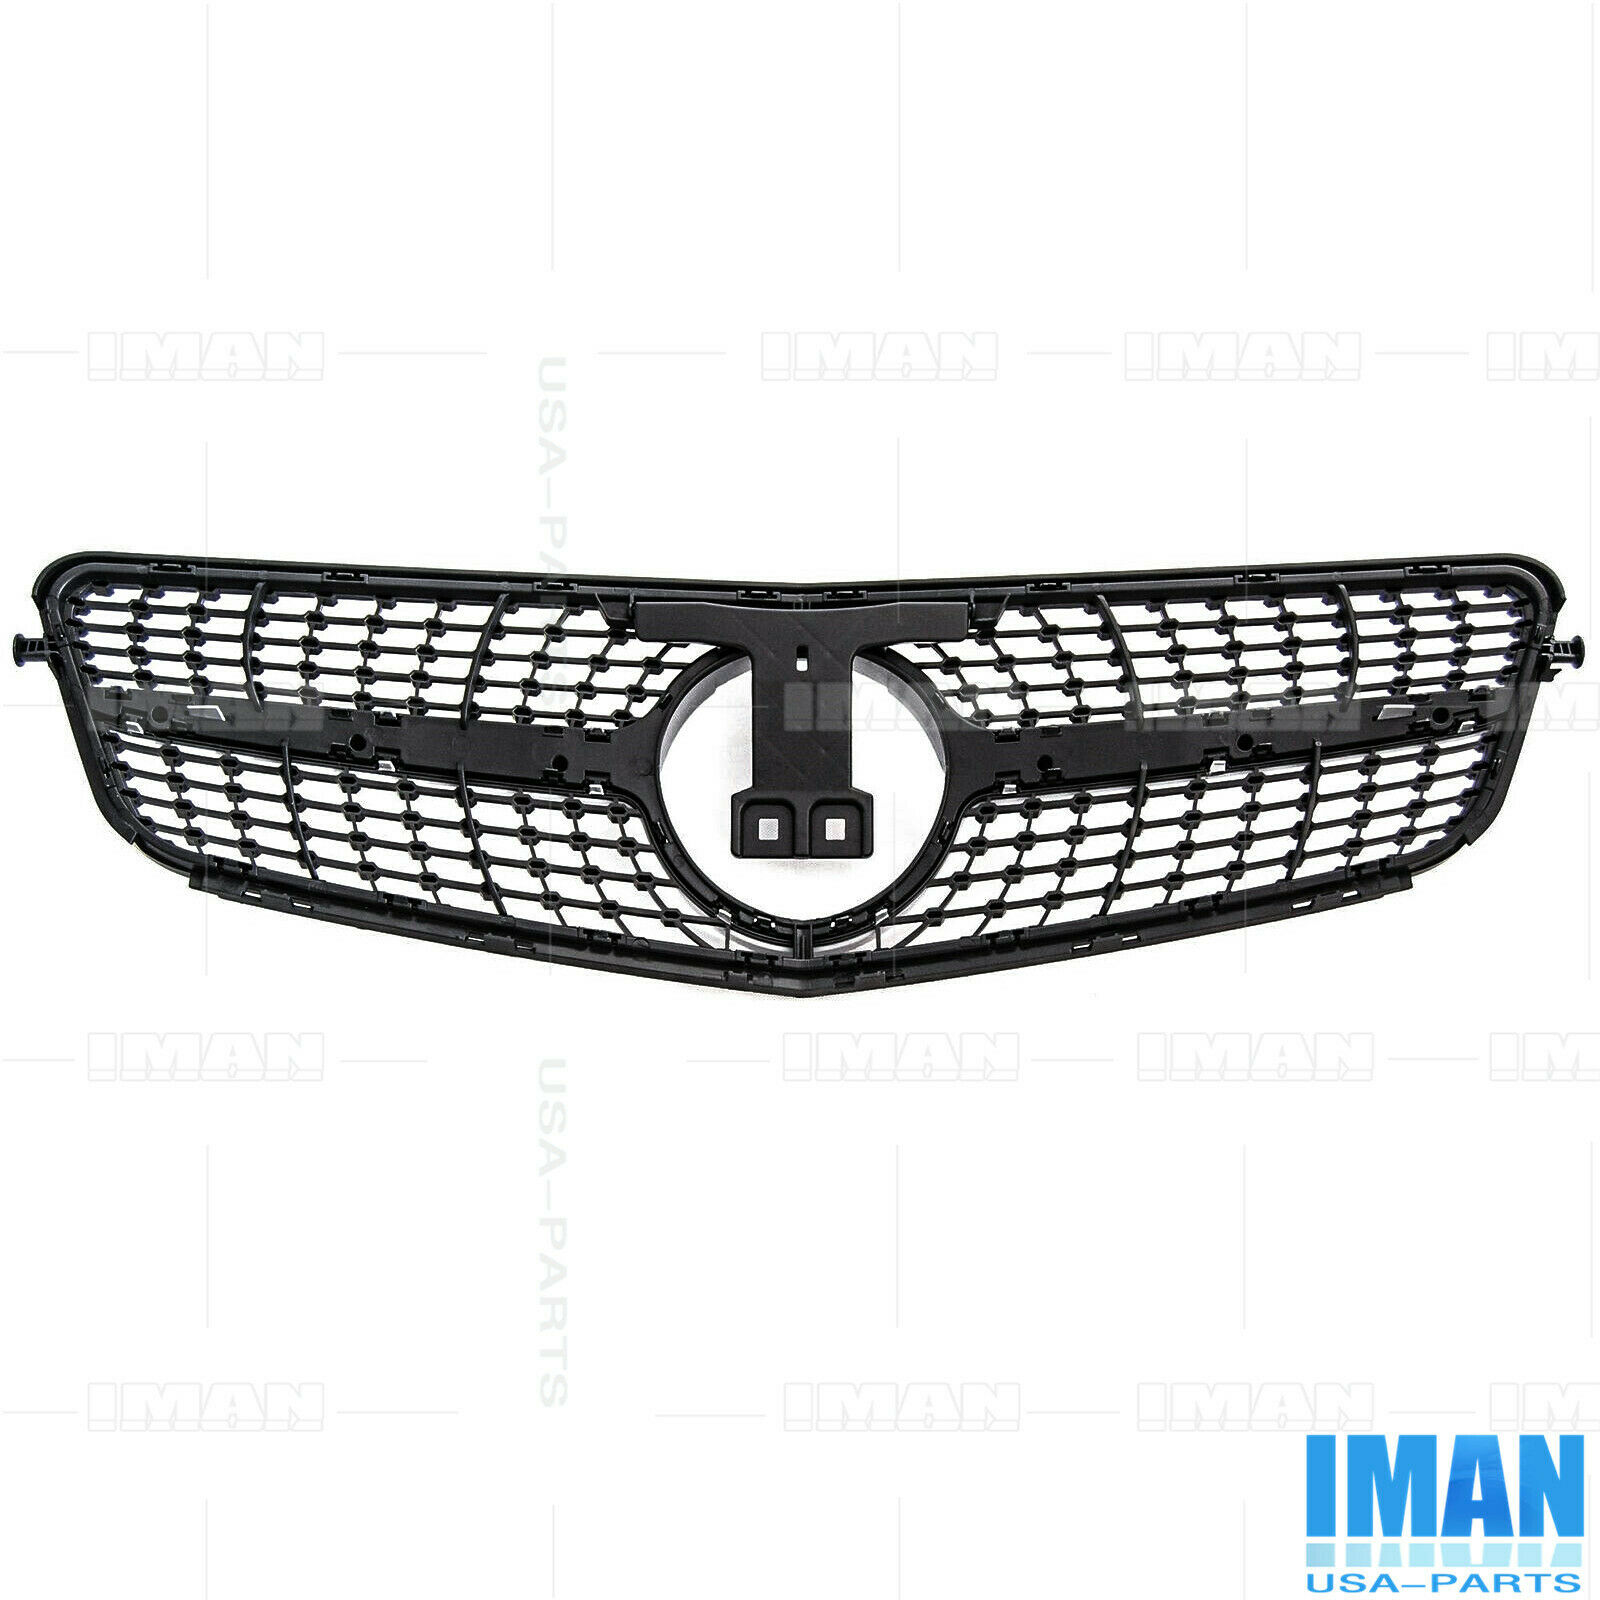 Silver Diamond Front Grille Grill For Mercedes W204 C200